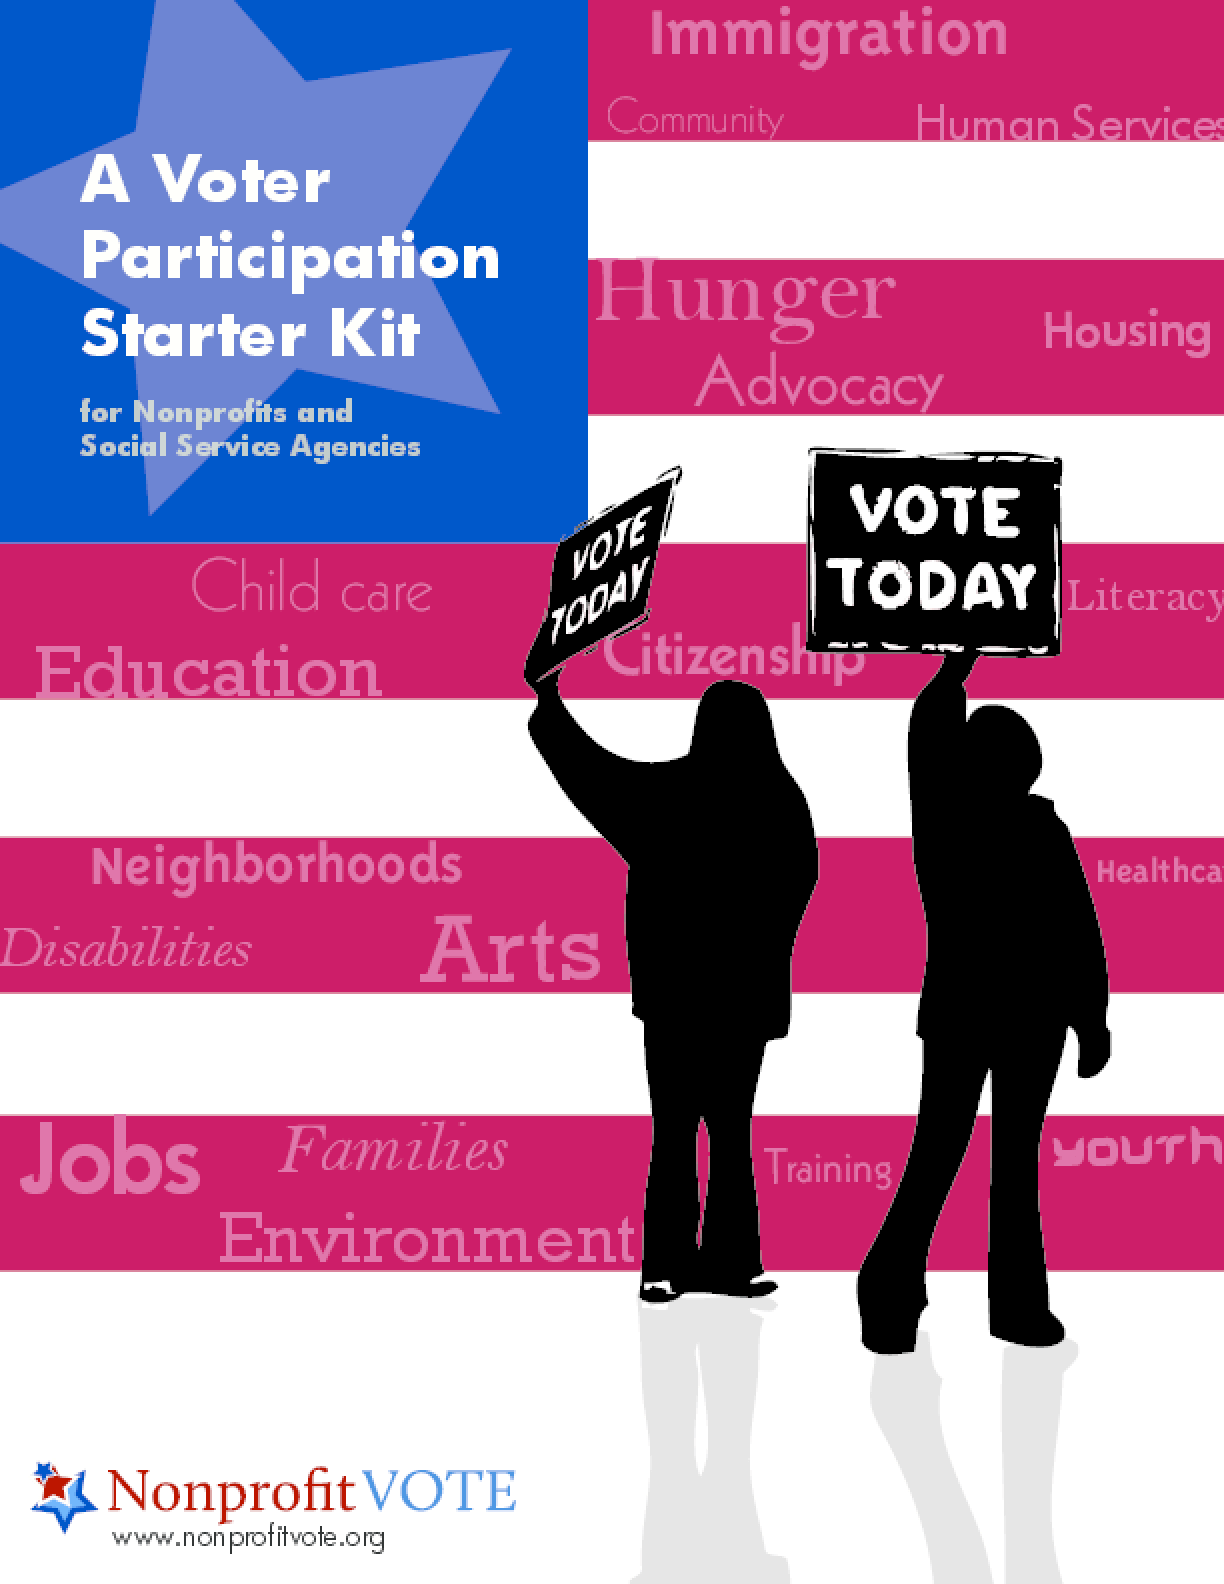 A Voter Participation Starter Kit for Nonprofits and Social Service Agencies